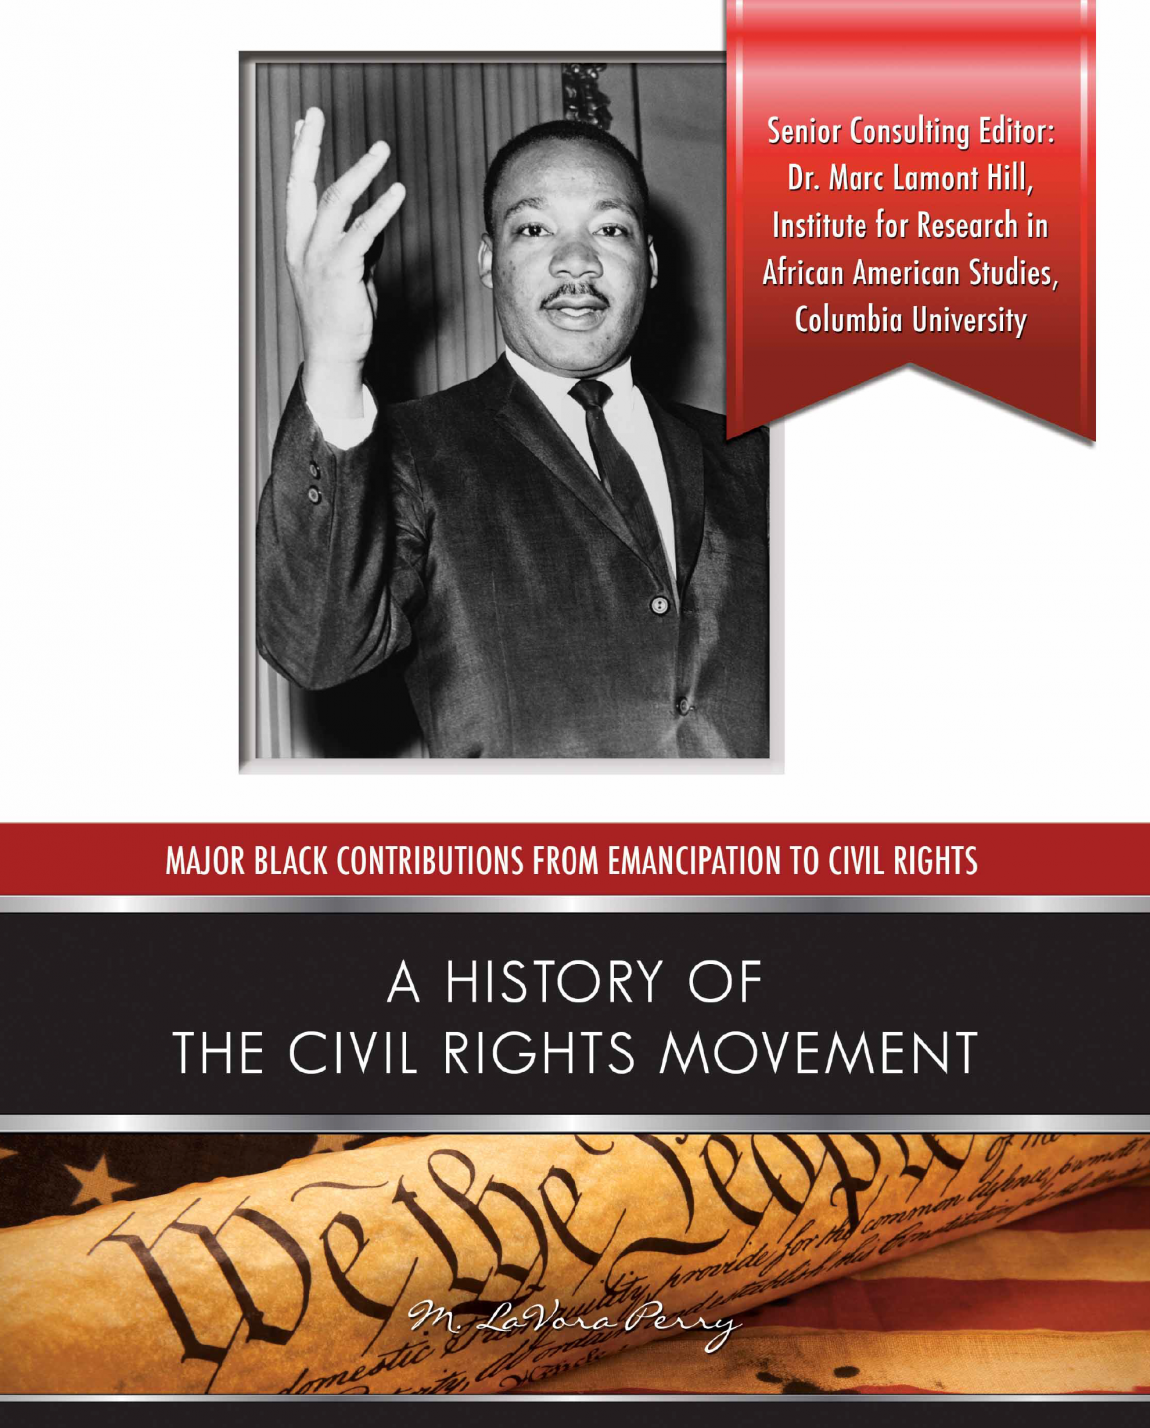 A-hisotry-of-the-civil-rights-movement-01.png